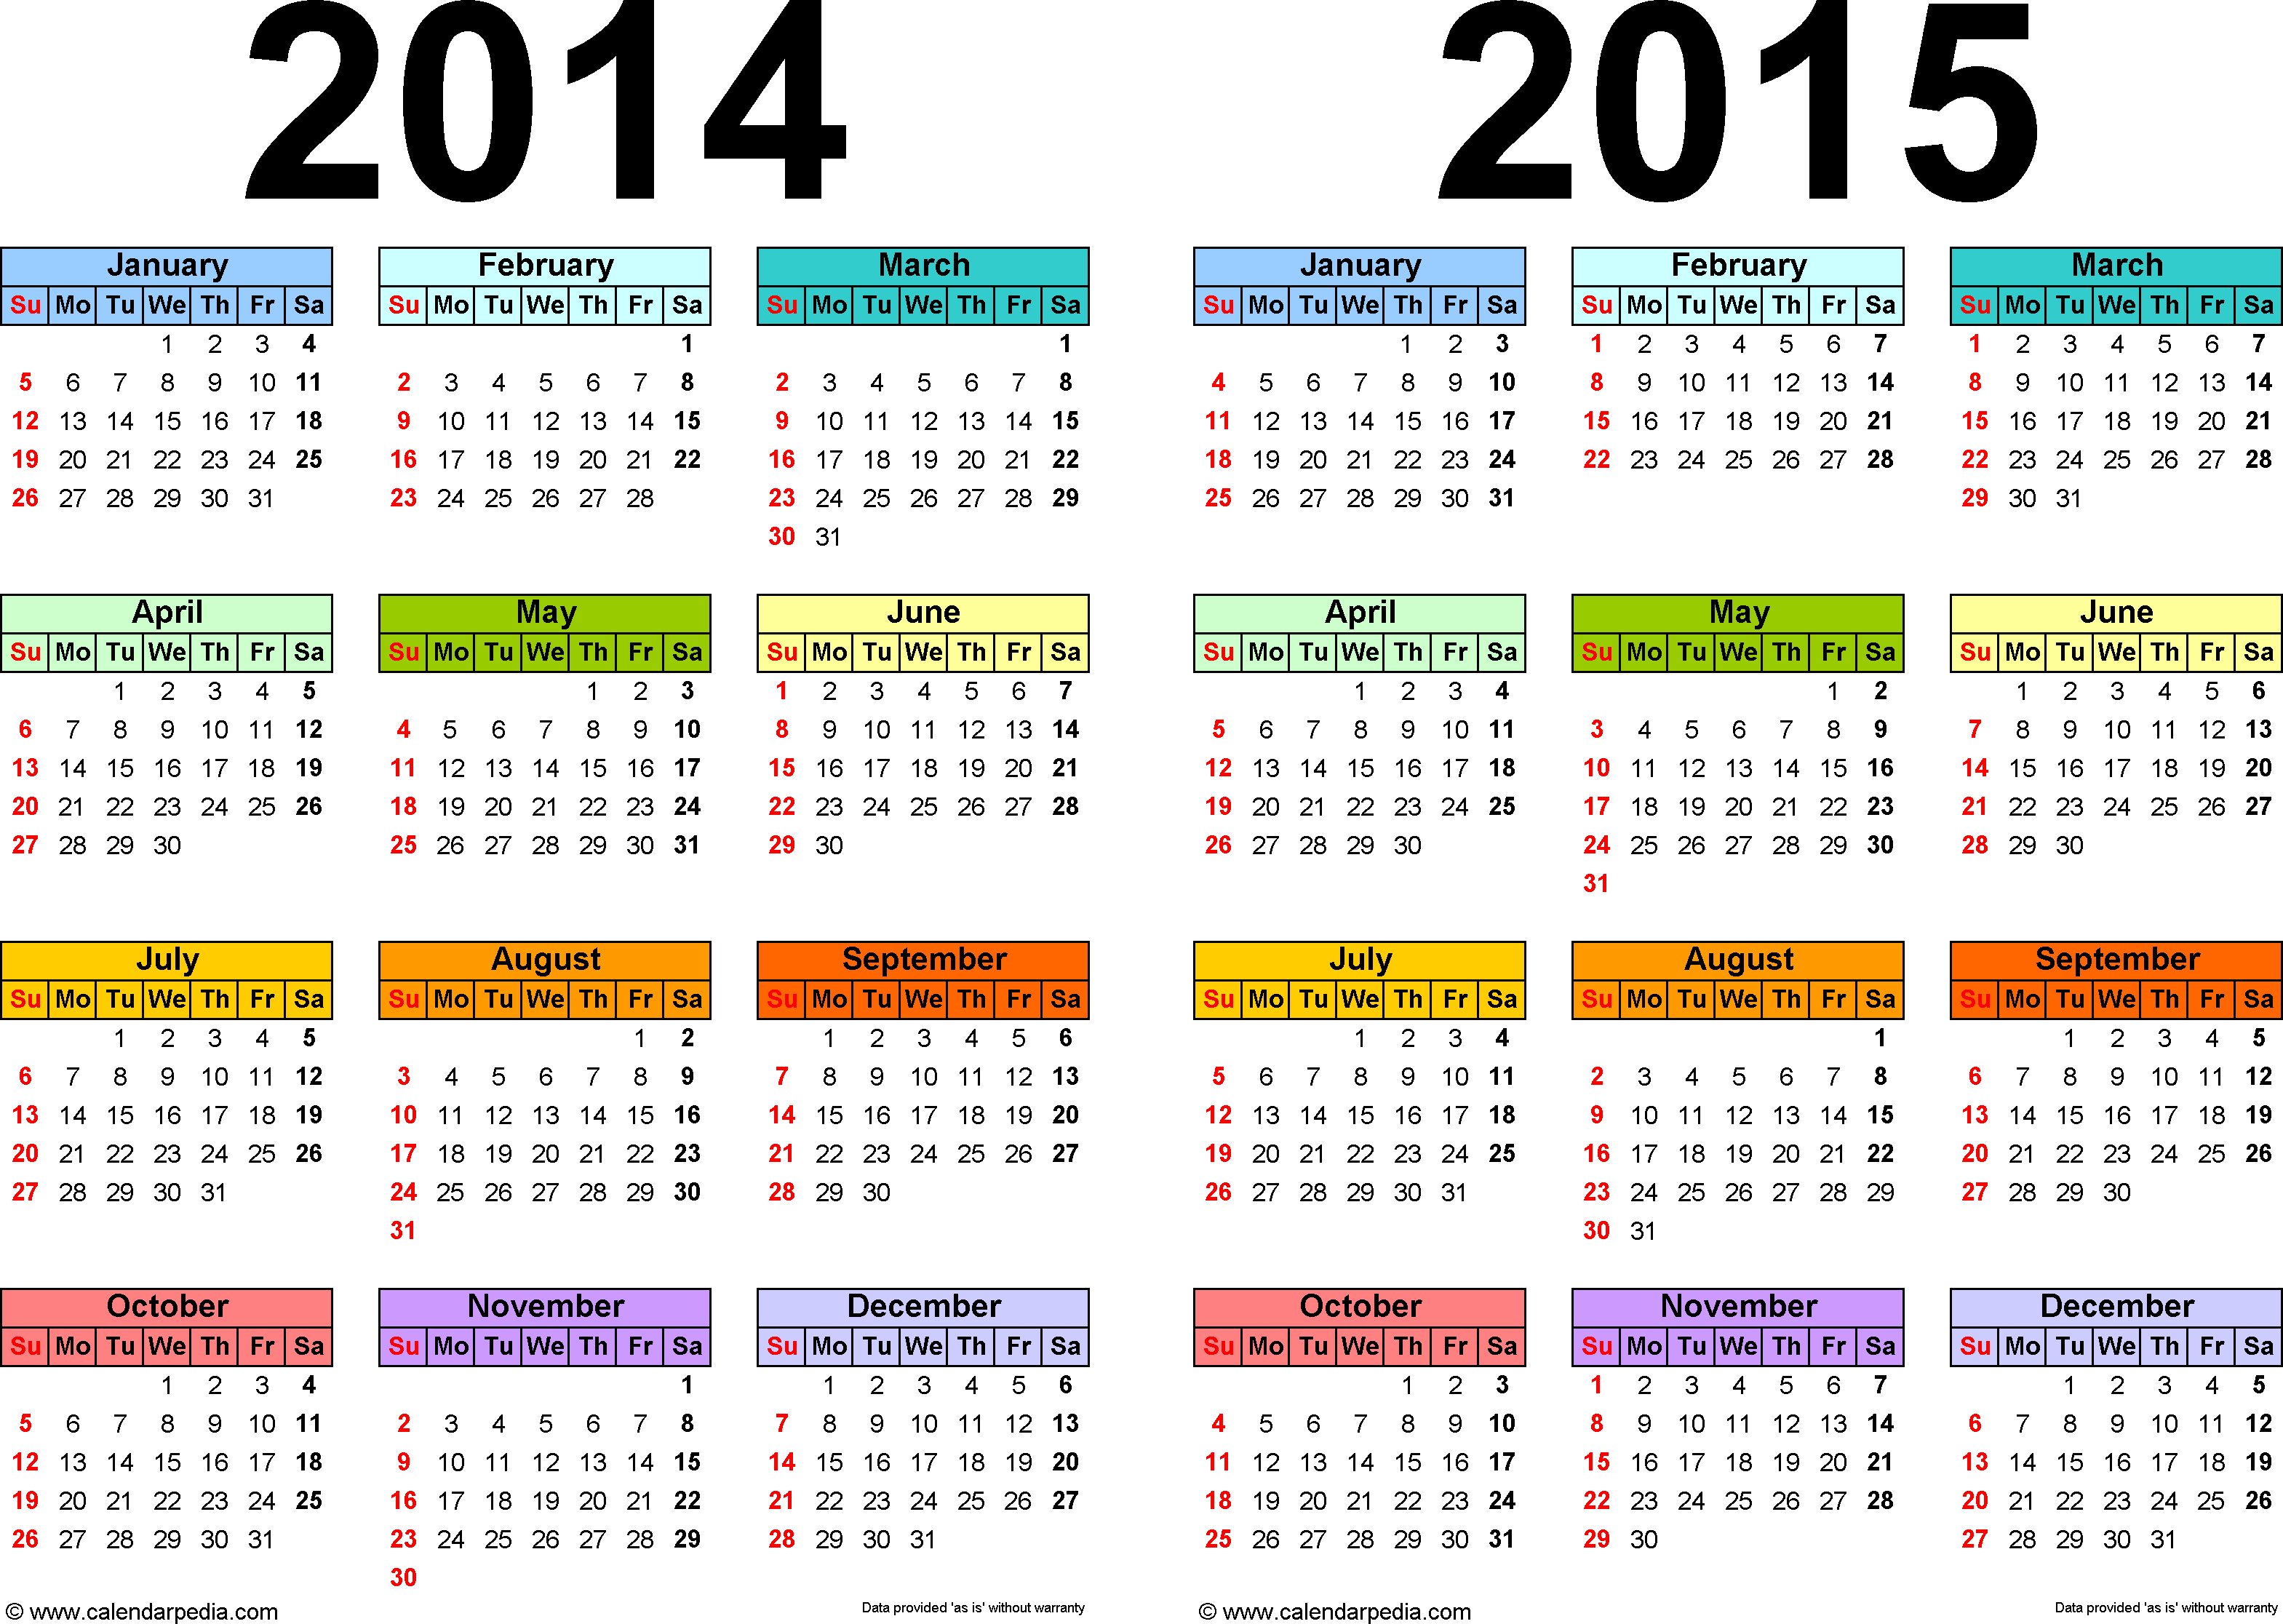 2015 calendar template with canadian holidays - 2014 2015 calendar free printable two year excel calendars